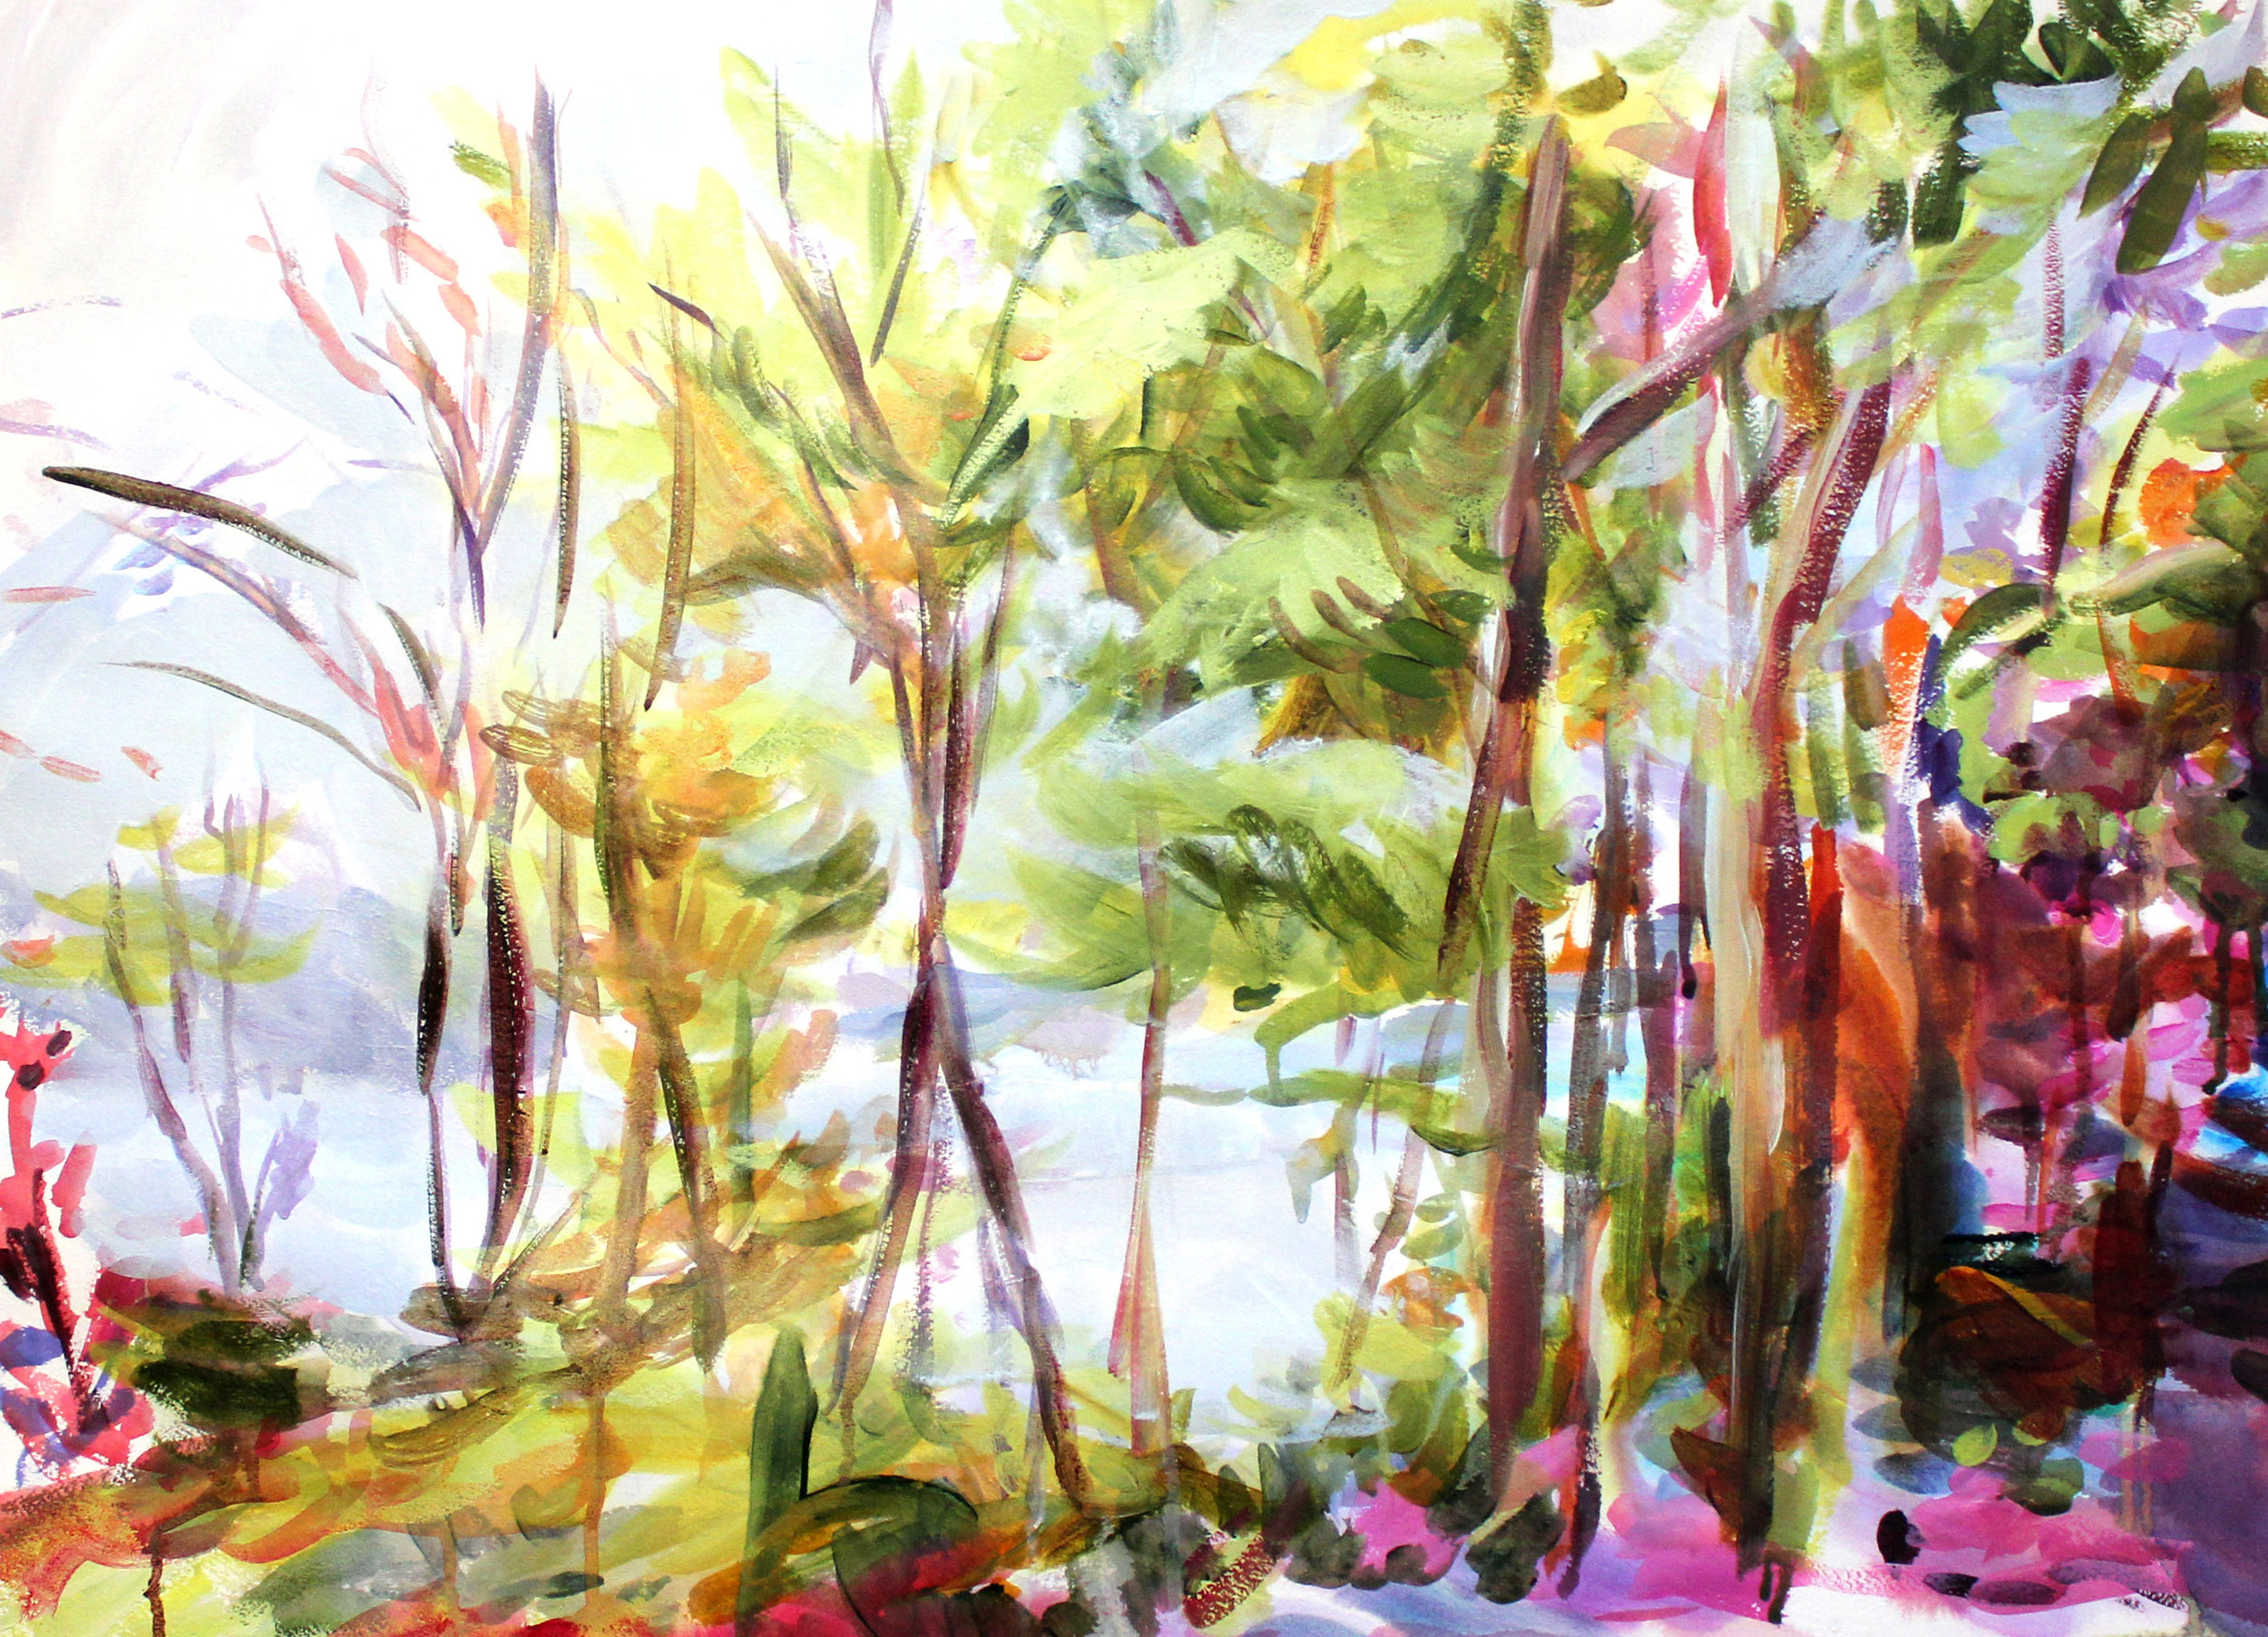 Eastern Townships #3 30x36 on paper